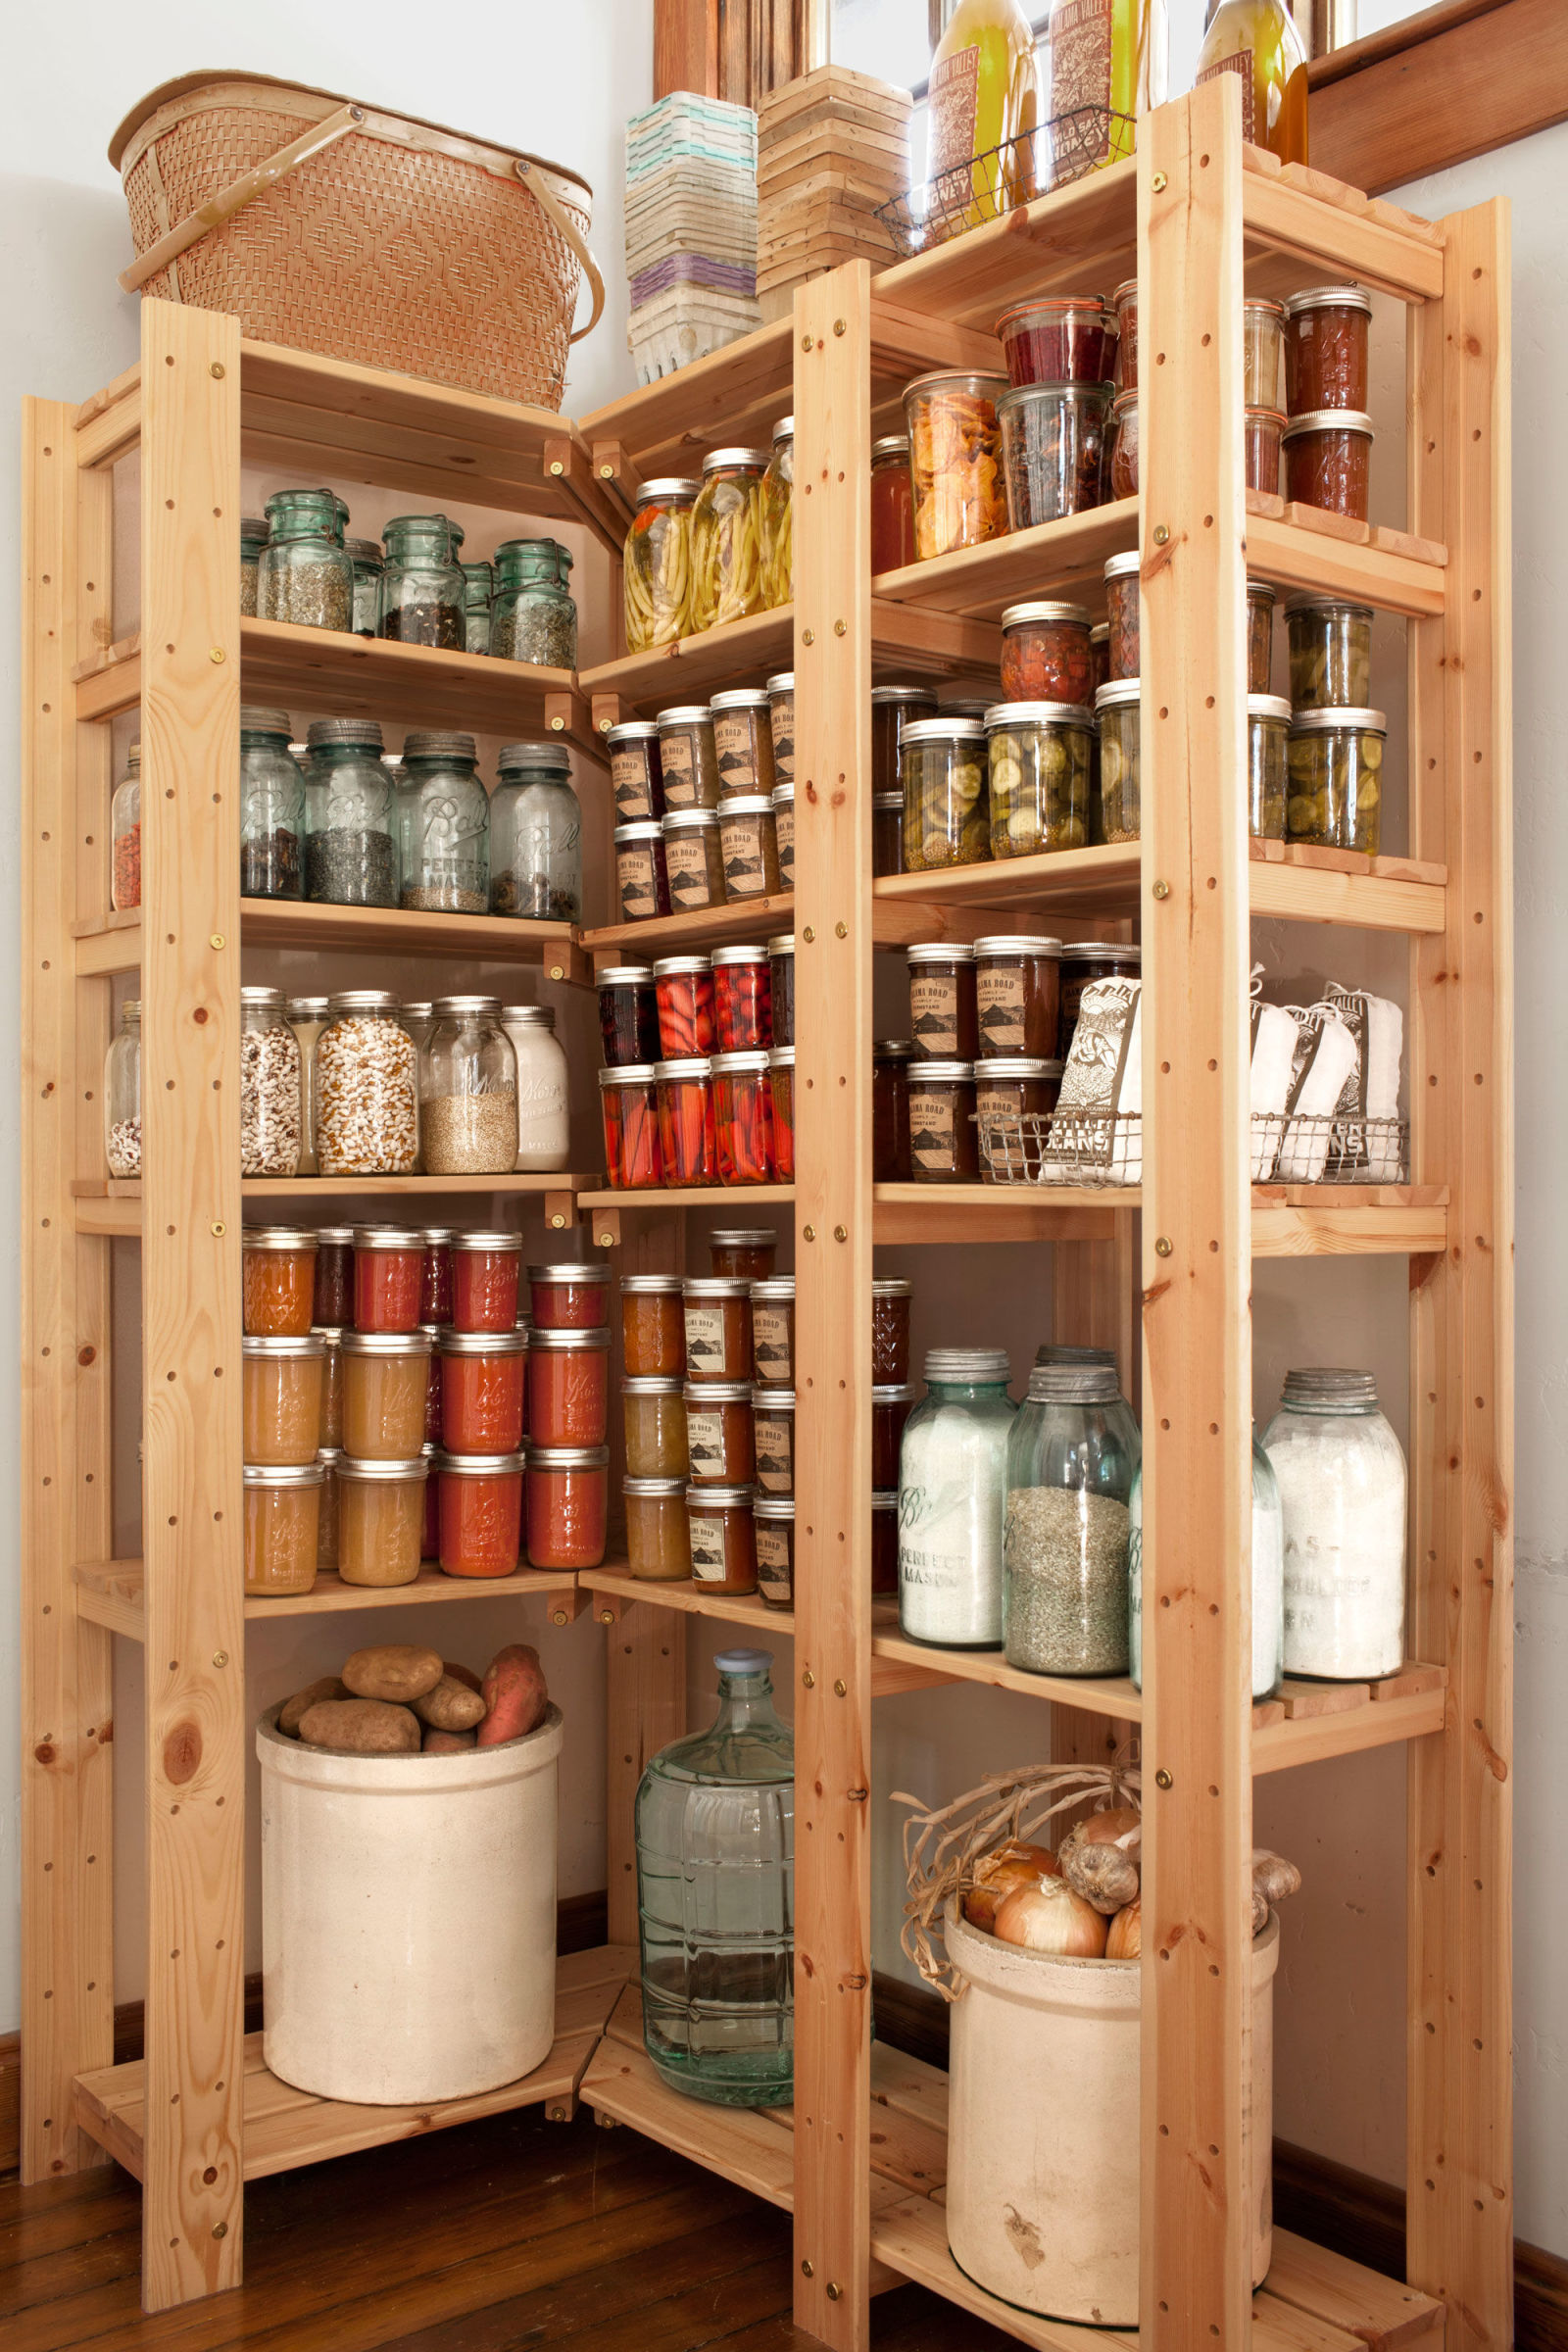 Kitchen Pantry Storage Ideas 14 Smart Ideas For Kitchen Pantry Organization  Pantry Storage Ideas